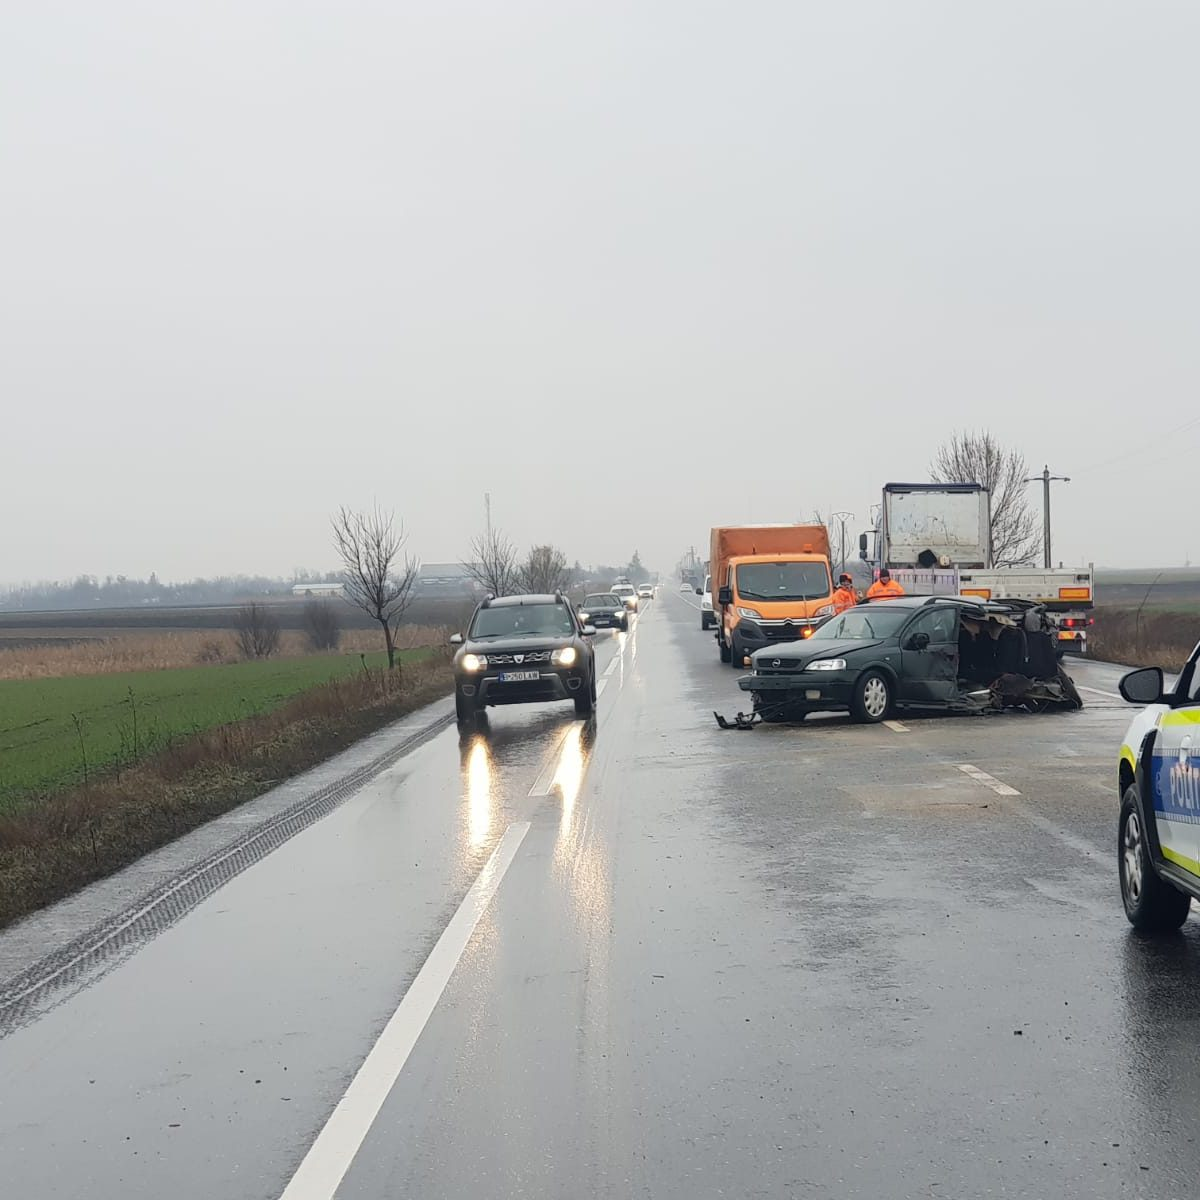 trafic-restrictionat,-pe-e85,-din-cauza-unui-accident-soldat-cu-doi-raniti